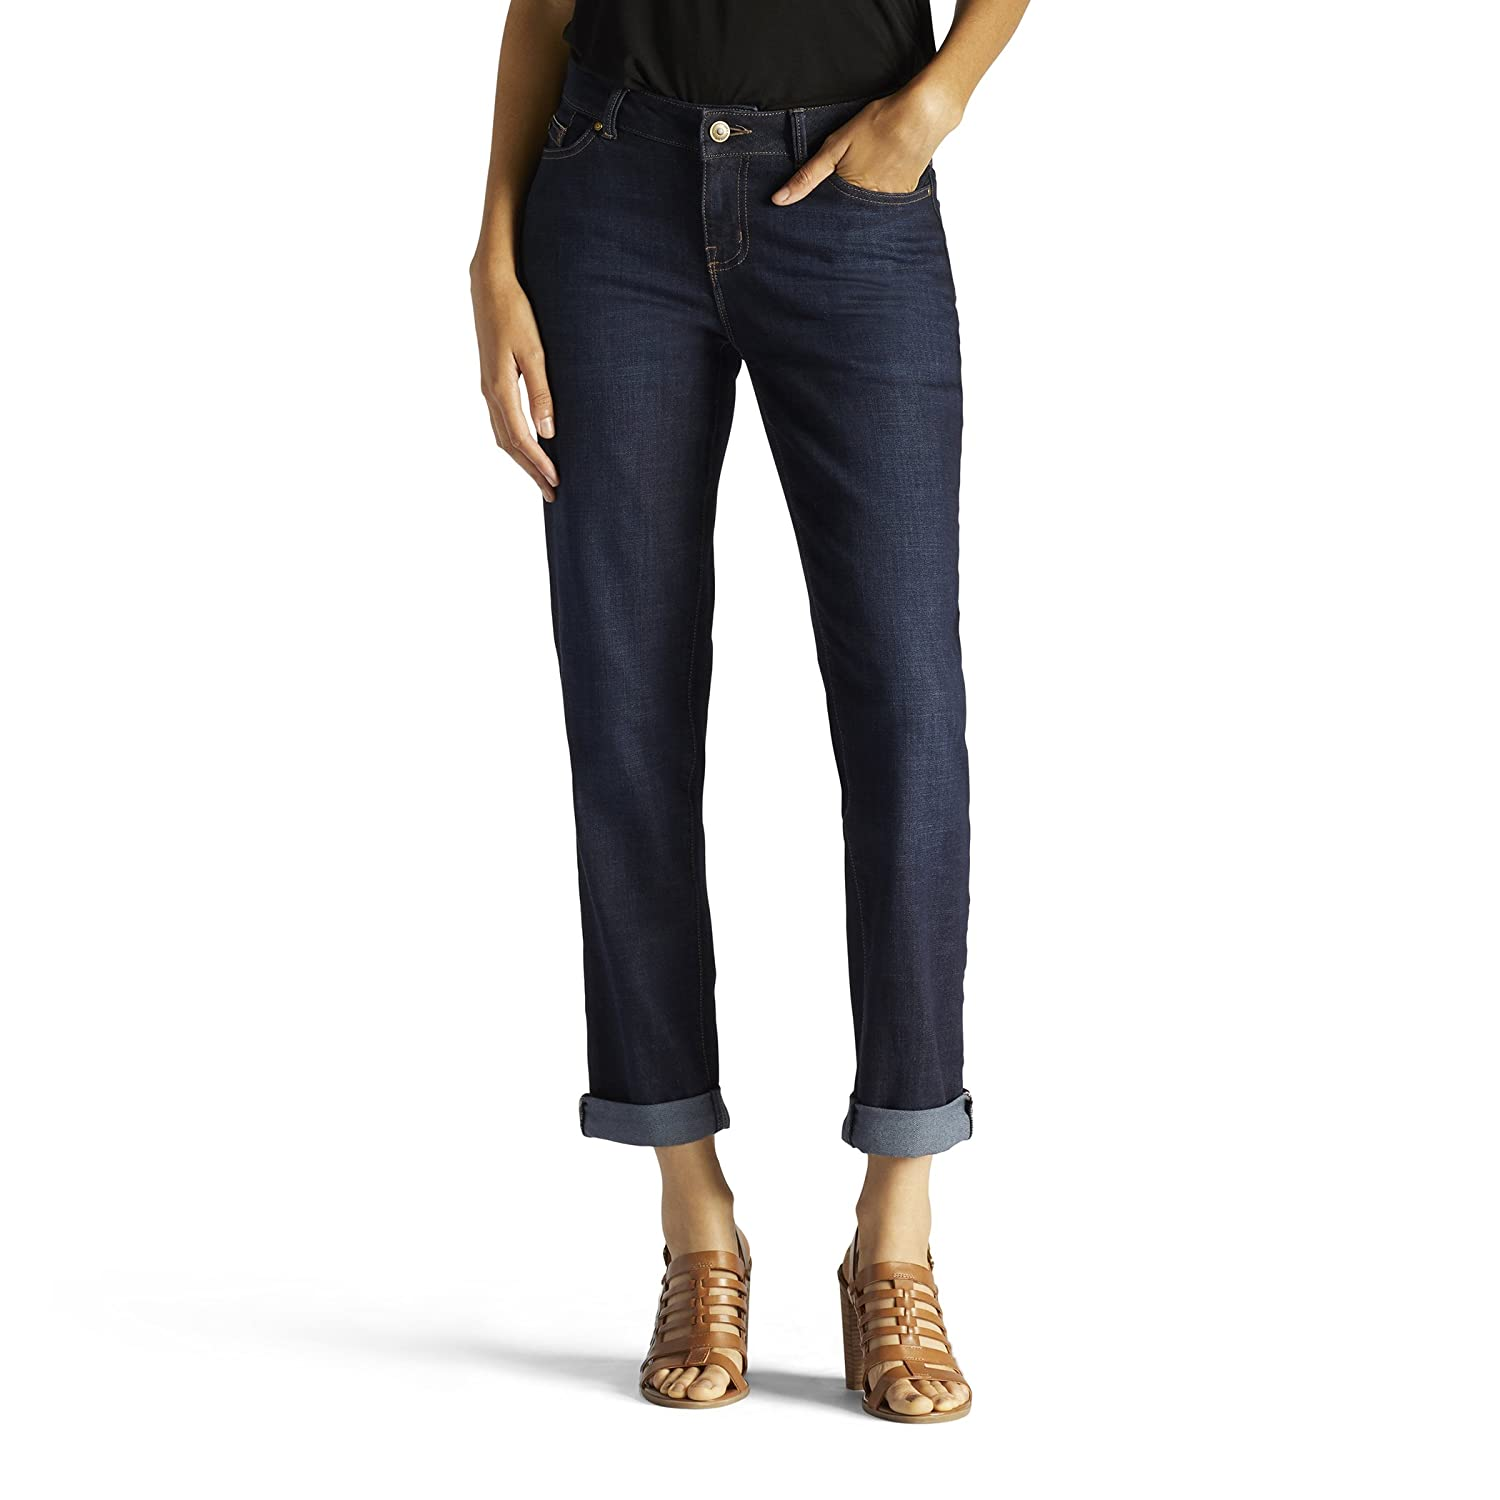 ad88b199 PERFECT COMFORT, PERFECT FIT: These premium stretch denim jeans hug your  curves yet keep their shape wear after wear. The no-gap Waistband ...